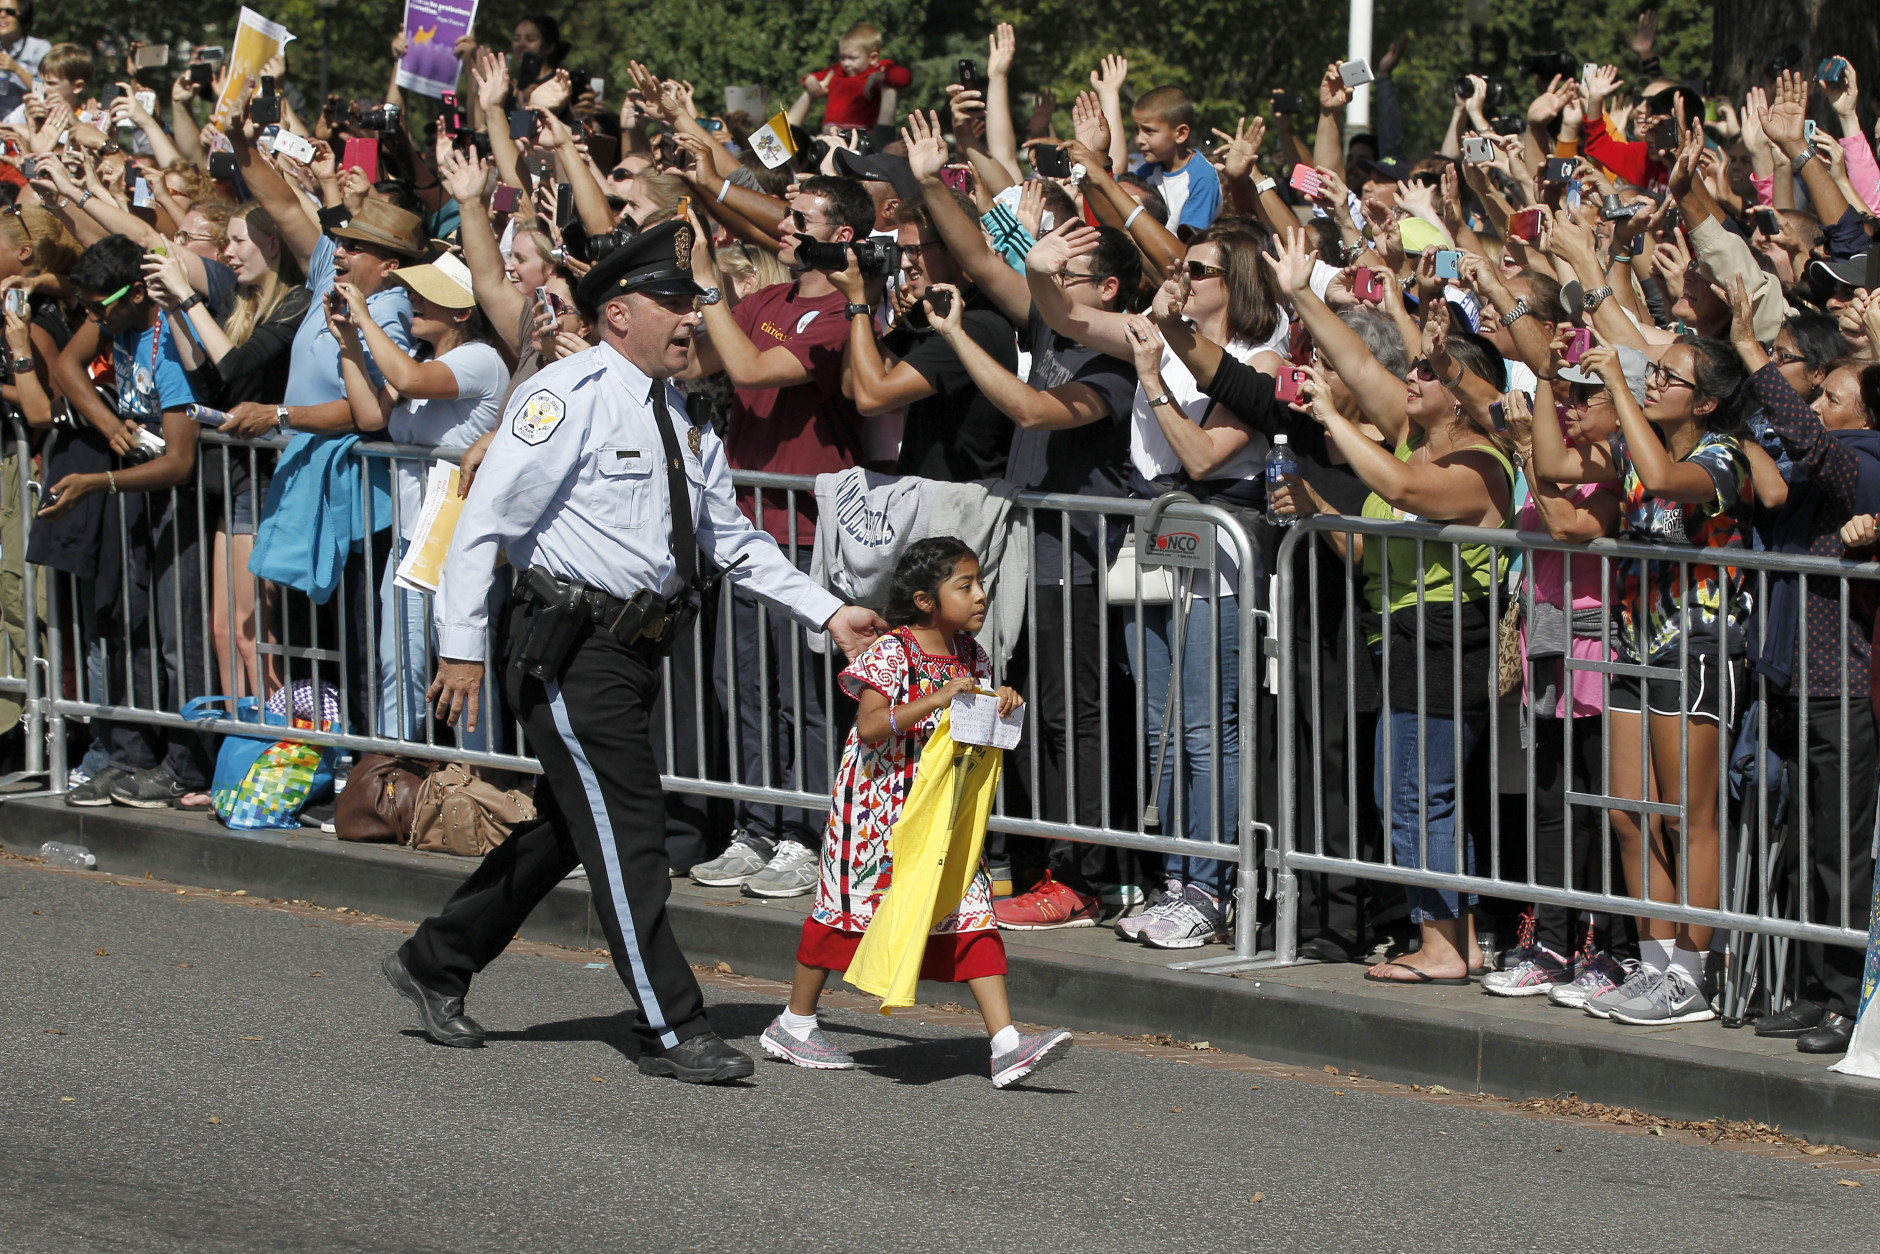 A child is escorted back before Pope Francis called for the child to be brought to him, during a parade in Washington, Wednesday, Sept. 23, 2015. (AP Photo/Alex Brandon, Pool)